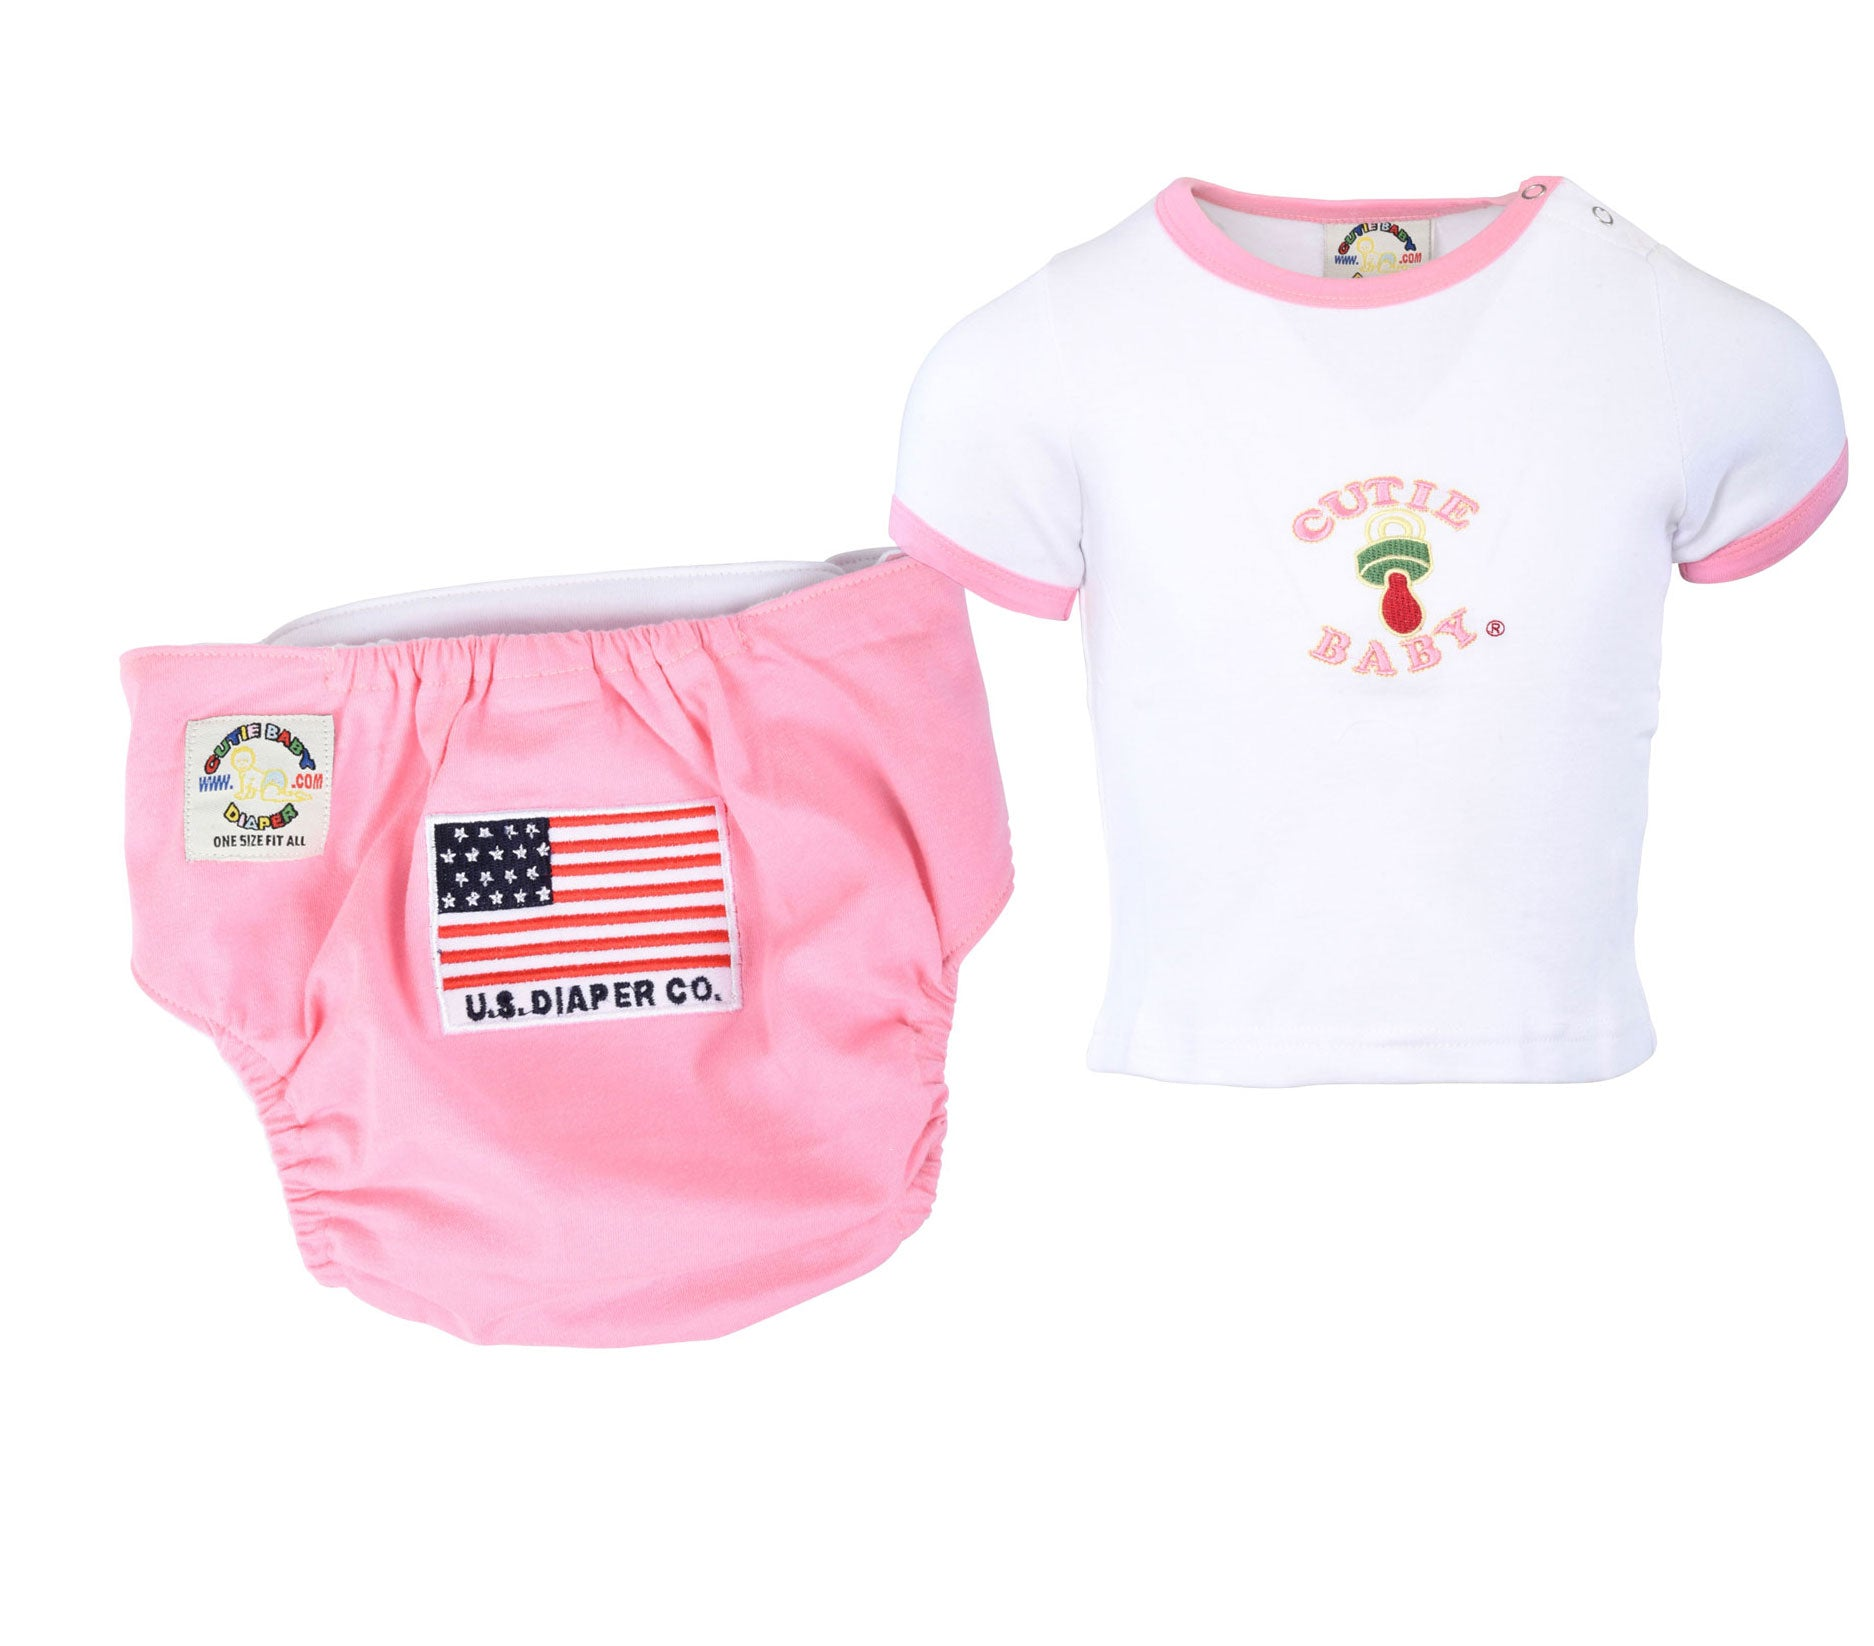 Buy 9 Diapers Get 3 Free Diaper & 1 Free Matching T-shirt